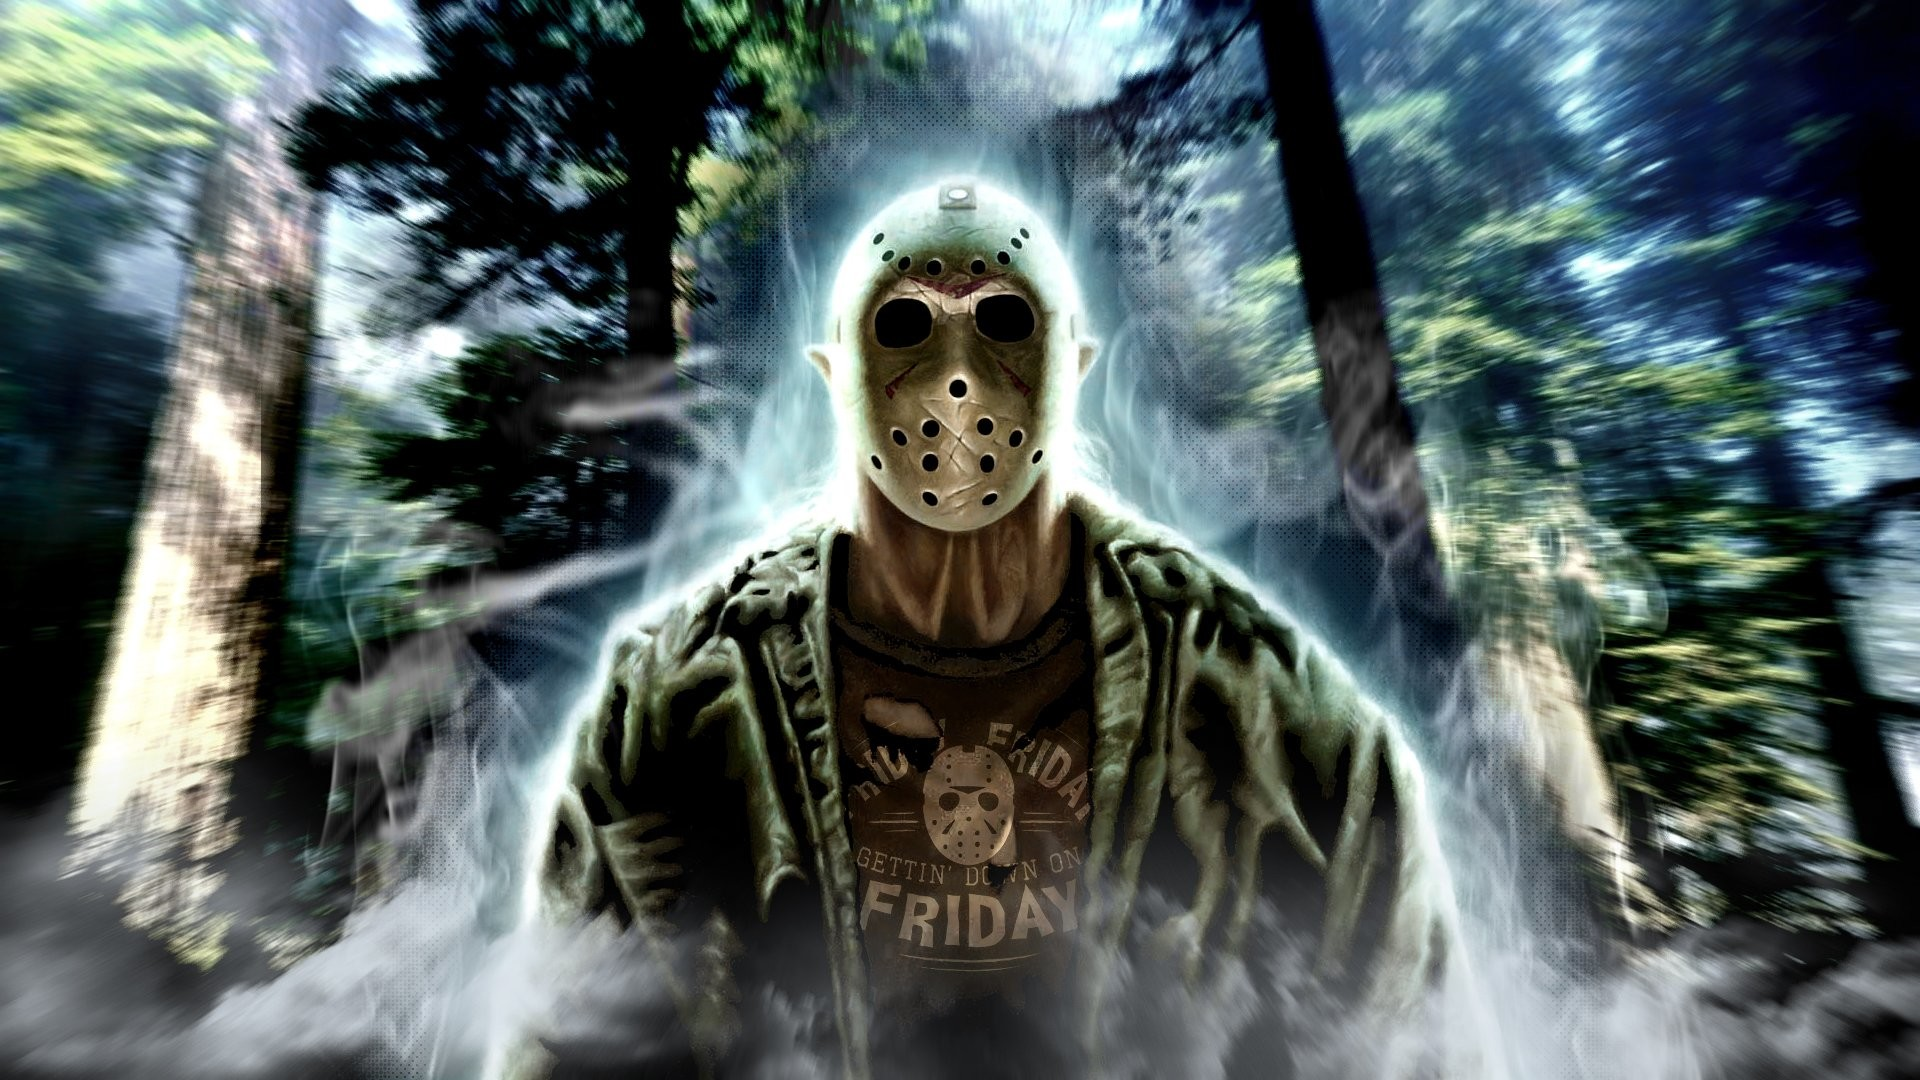 1920x1080 FRIDAY 13TH dark horror violence killer jason thriller fridayhorror  halloween mask wallpaper |  | 604277 | WallpaperUP